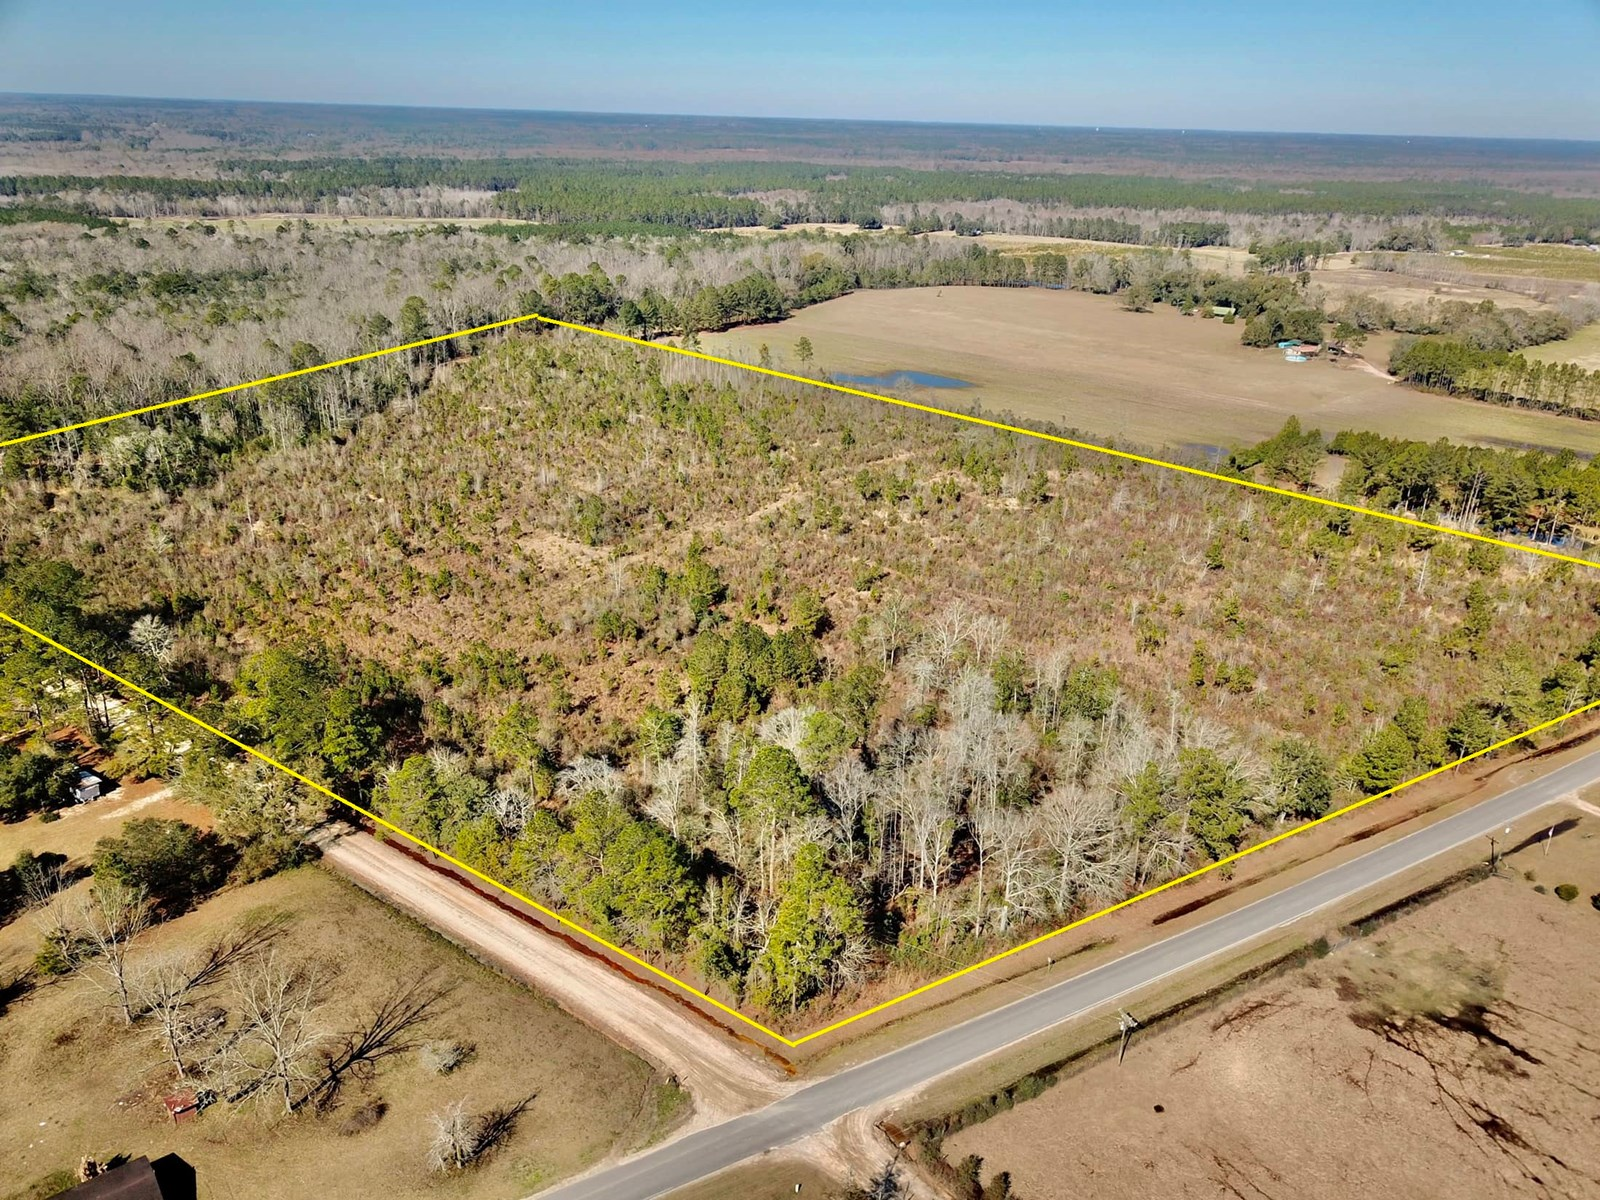 46 Acres for sale on Highway 179, Bonifay, Florida